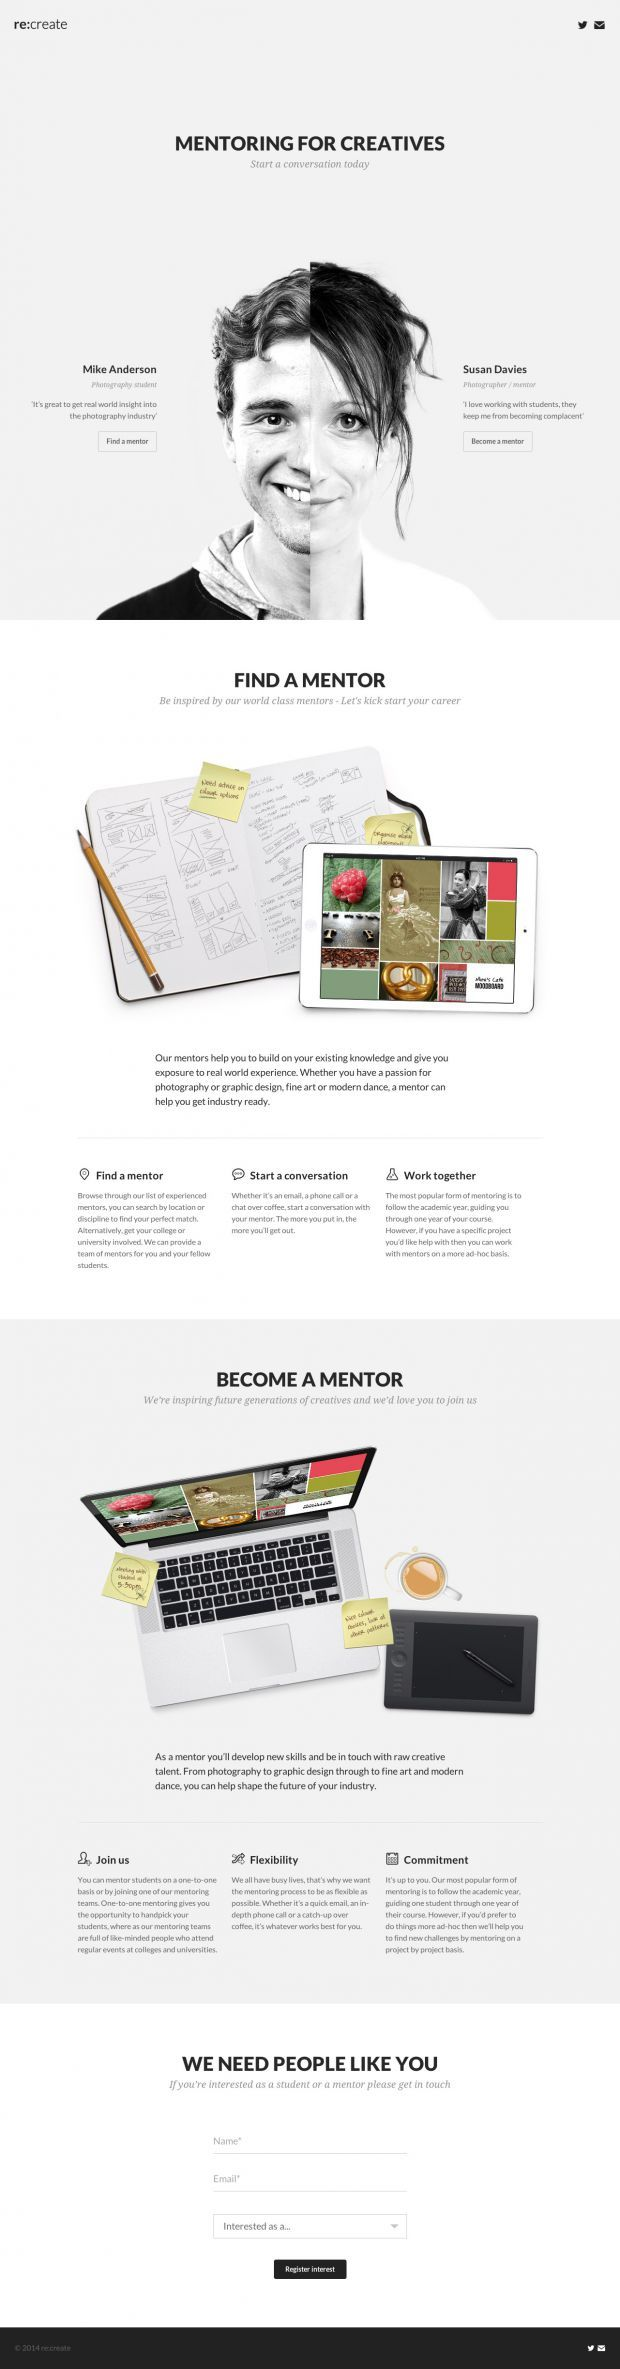 Mentoring for Creatives - www.niceoneilike.com - #portfolio #html5 #responsive #design #creative #graphic #inspiration #scrolling #site #photography